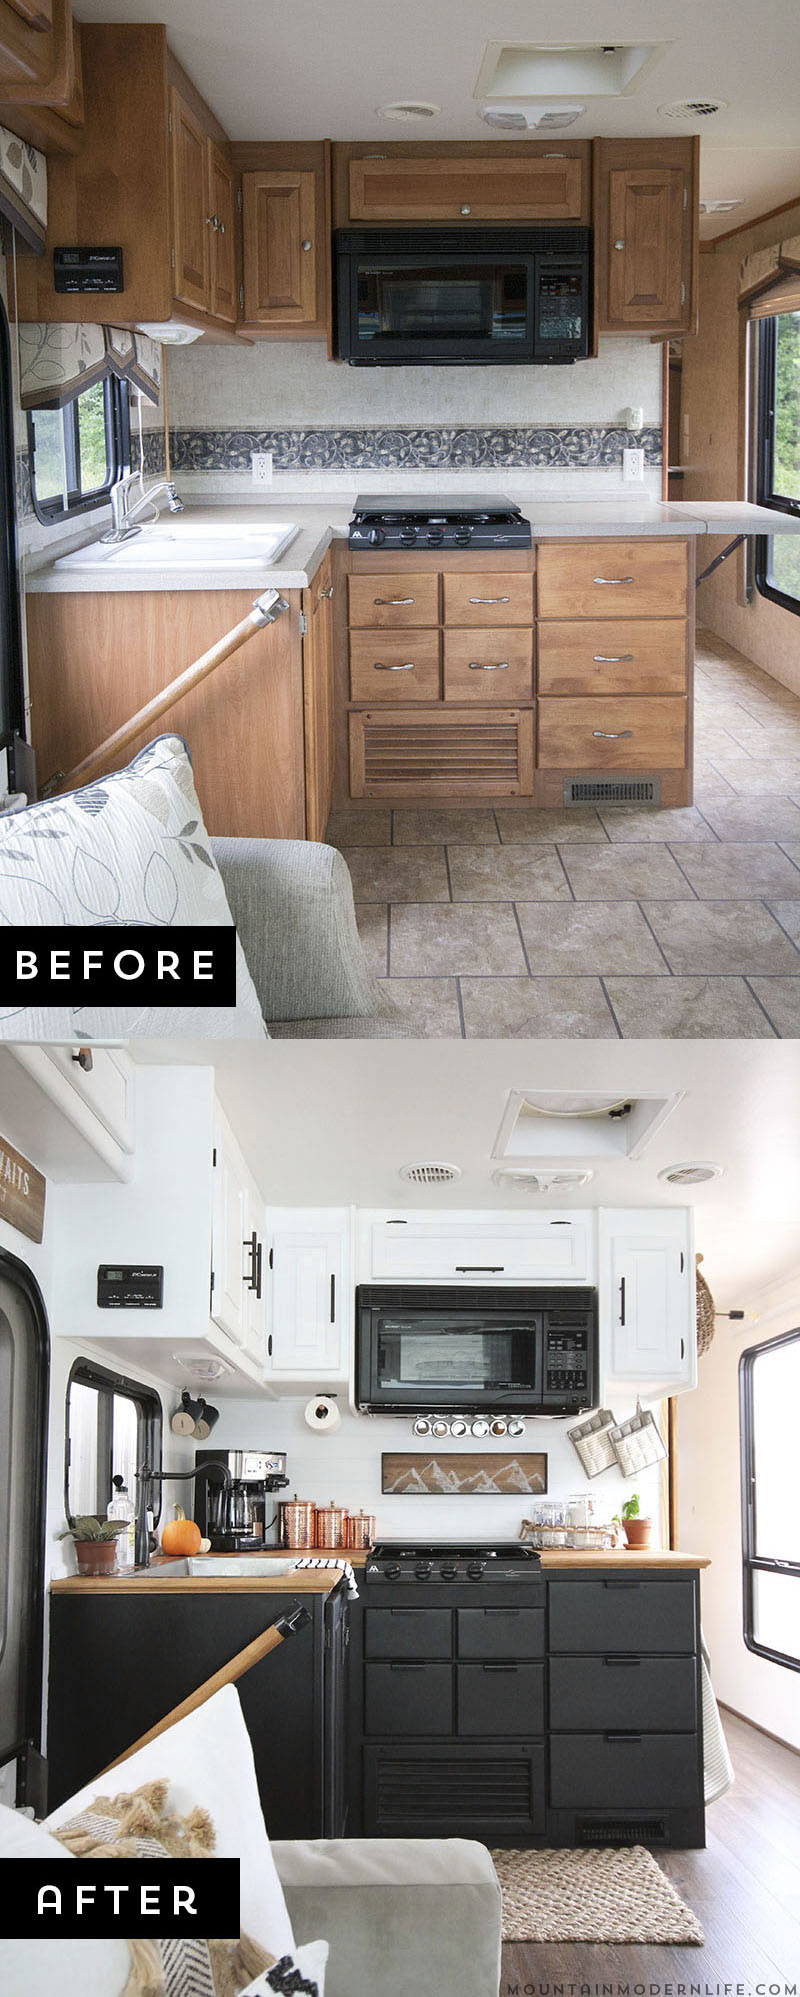 Camper Remodel Ideas 88 - decoratoo on Remodeling Ideas  id=74465